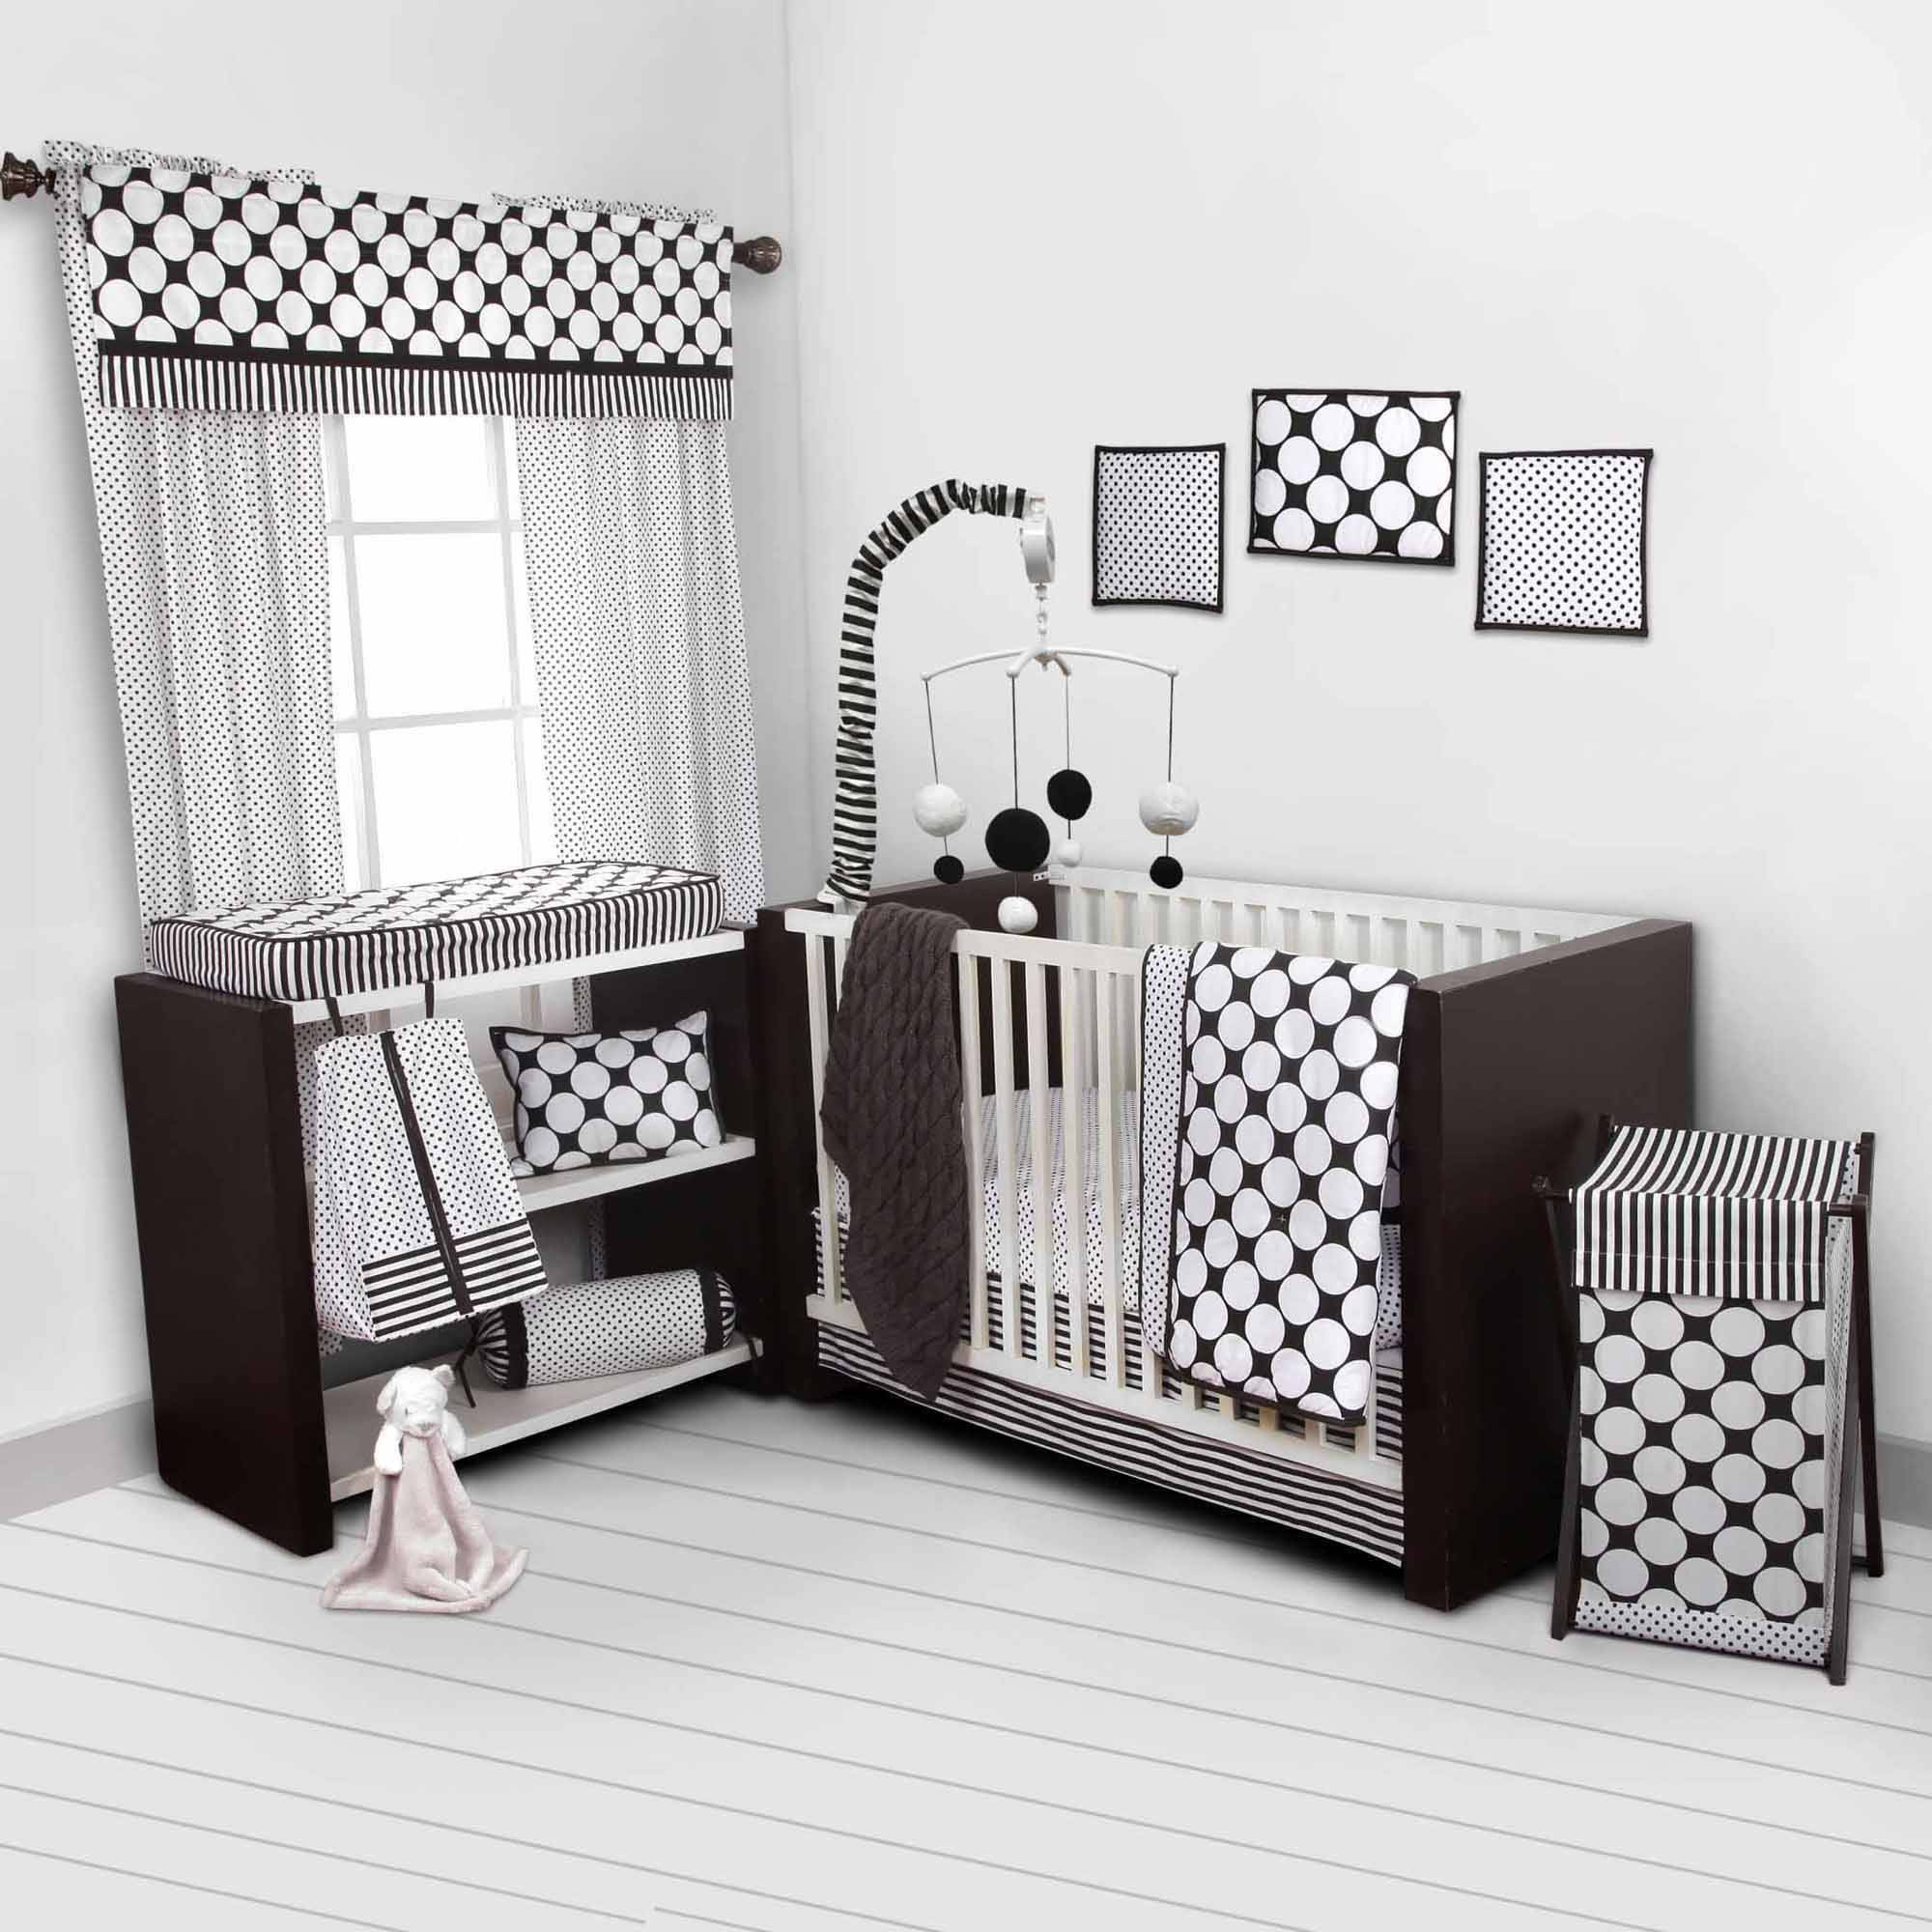 Bacati - Dots/Pin Stripes Black/White 10-Piece Nursery in a Bag Crib Bedding Set 100% Cotton Percale Girls Crib Bedding Set with 2 crib fitted sheets (Bumper Pad not included) for US standard Cribs